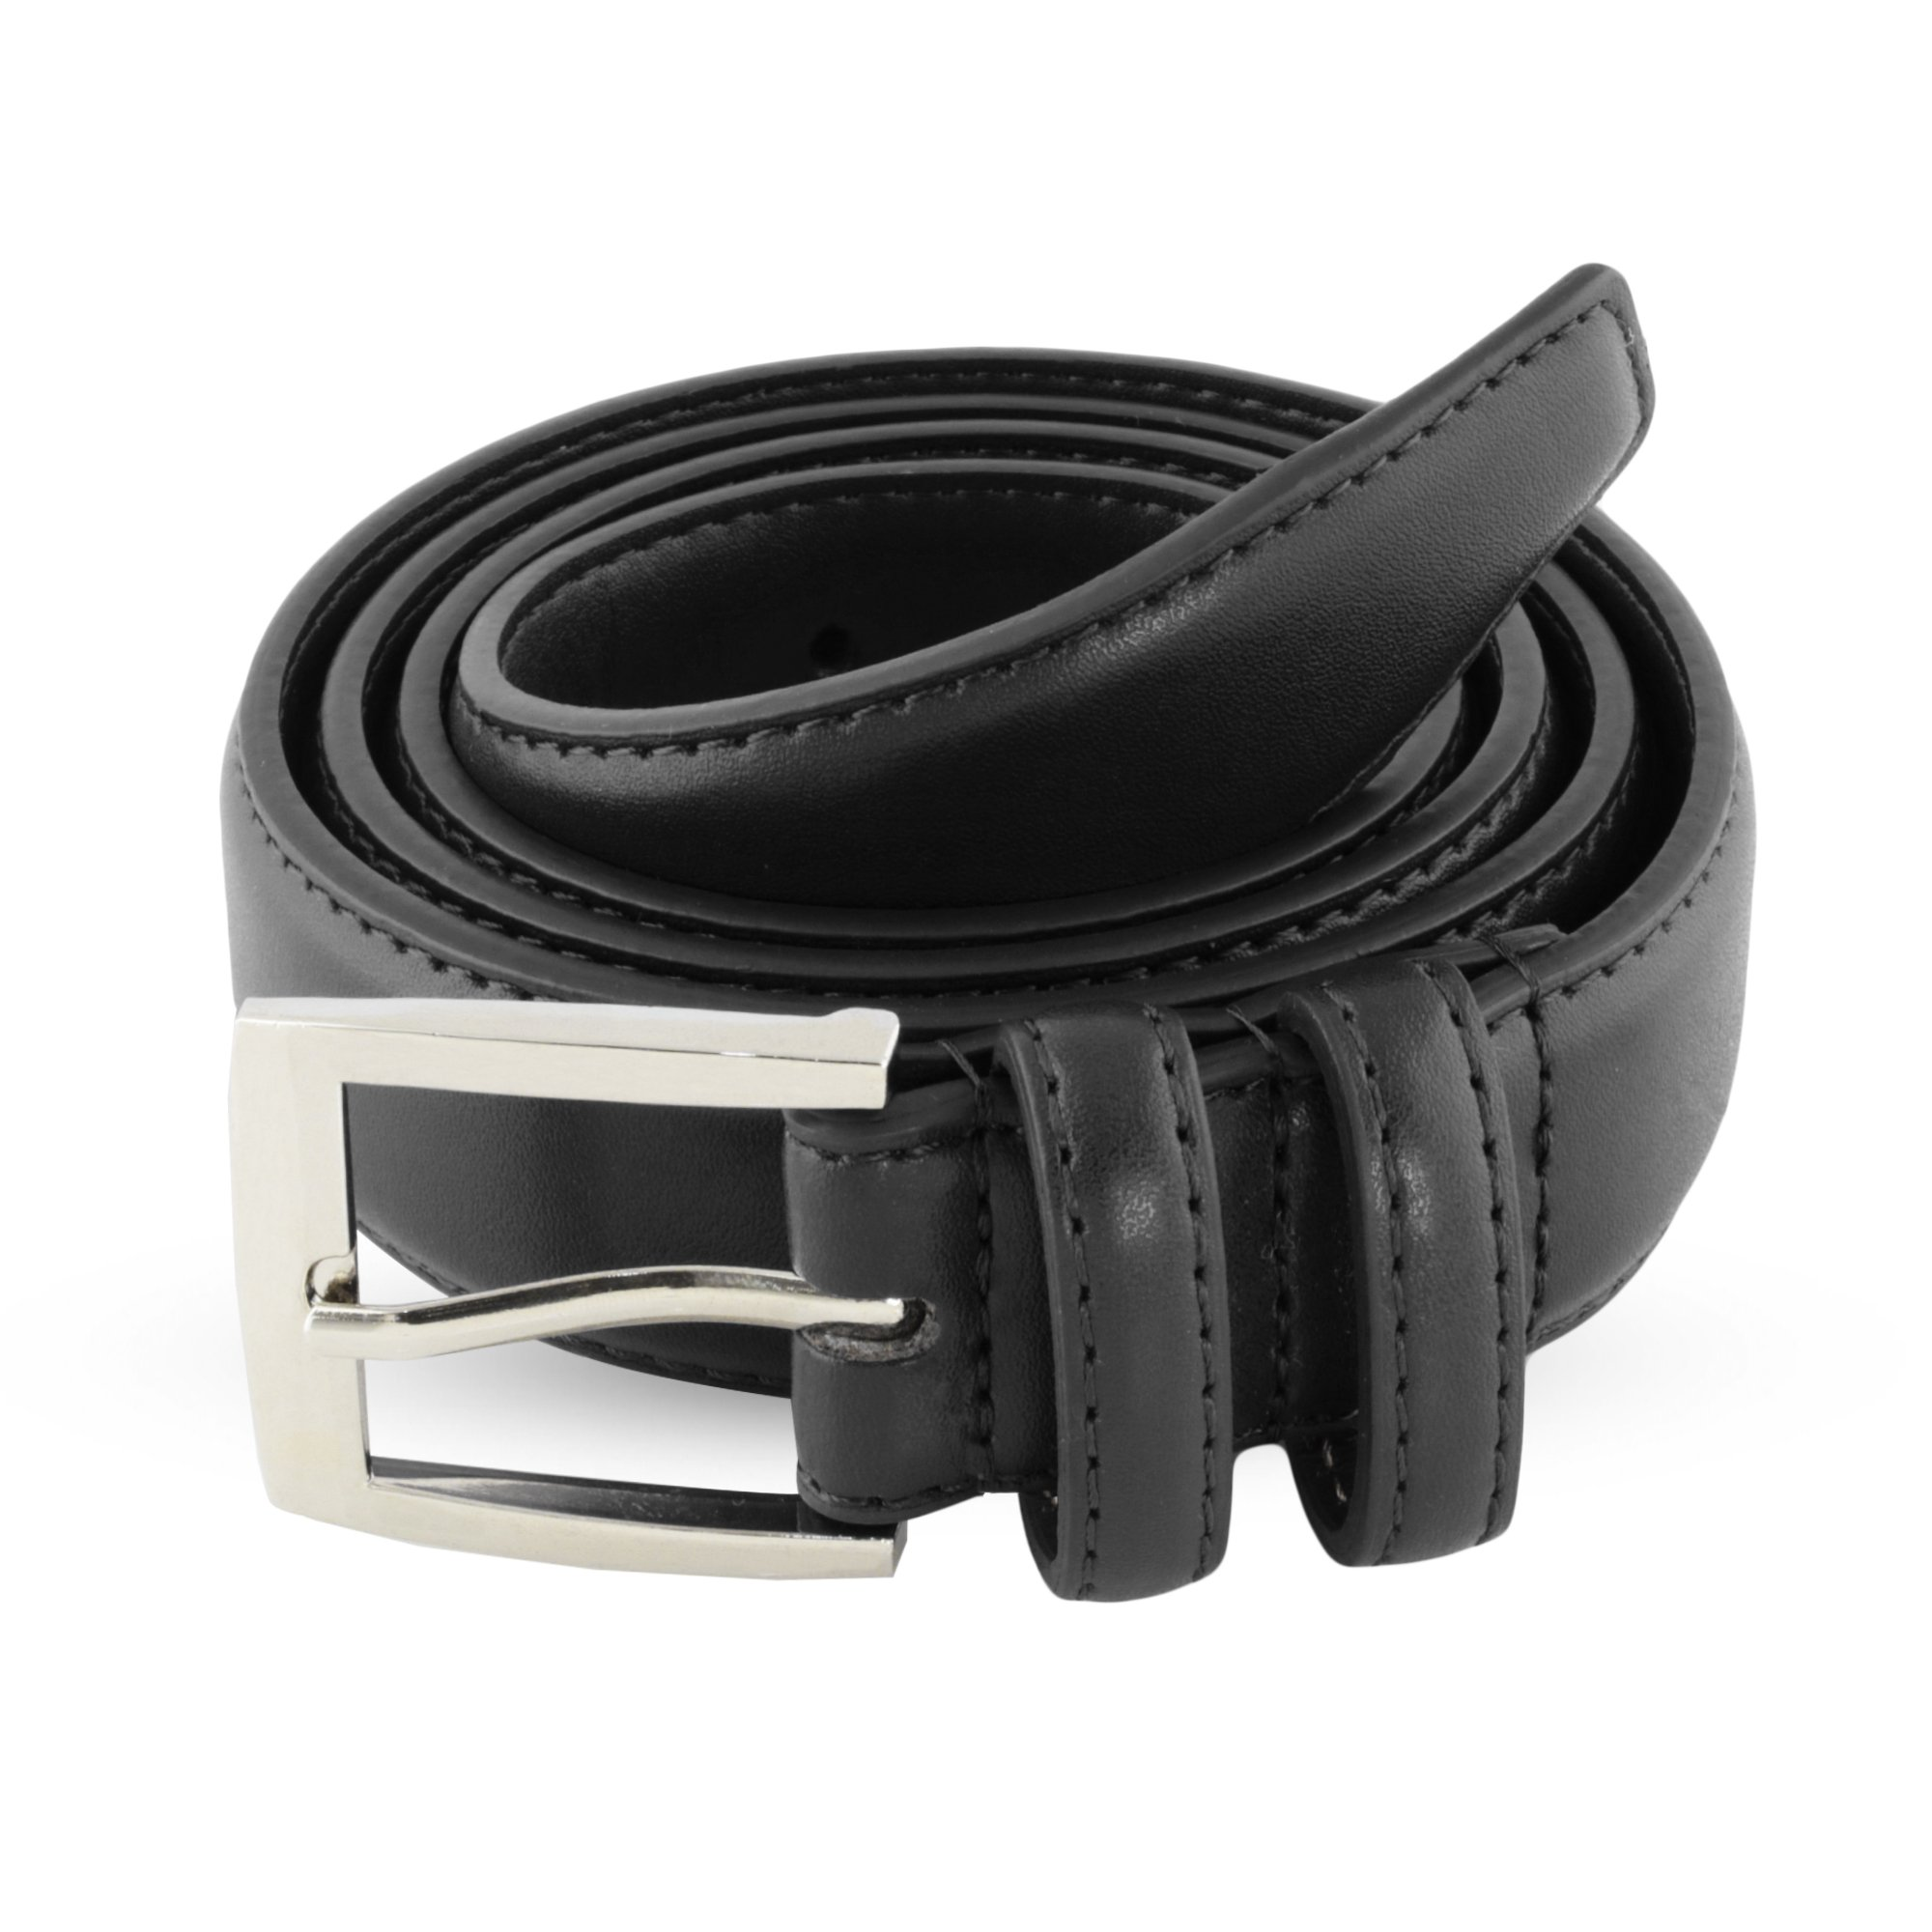 Leather Belts For Men - Mens Black Belt - 1.25'' Dress & Casual Men's Belt in Gift Bag - 36